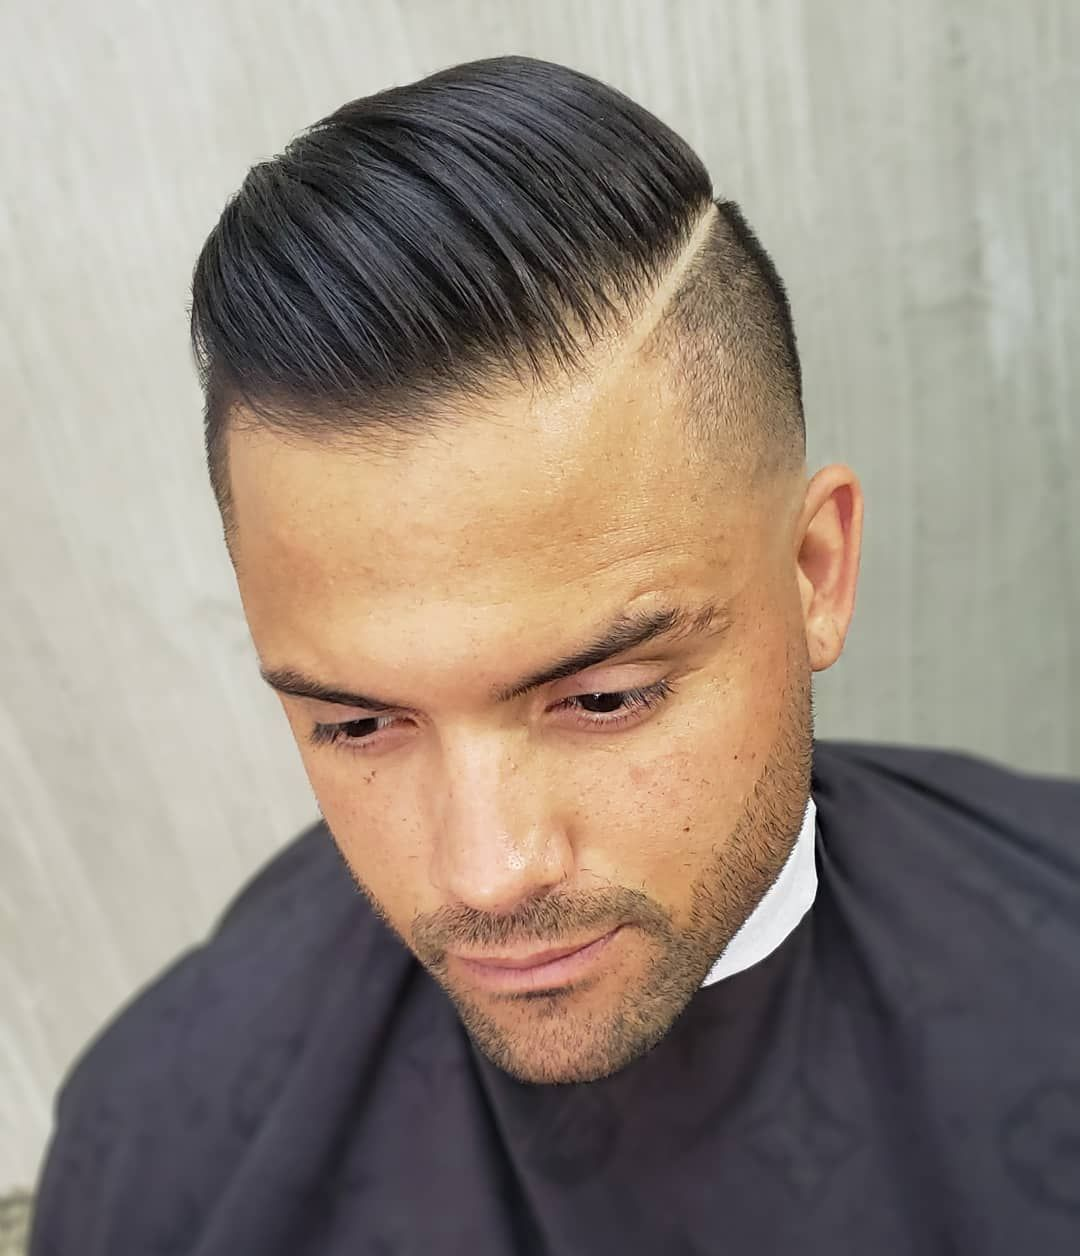 Latino Mens Haircuts Beard And Hair Pinterest Haircuts